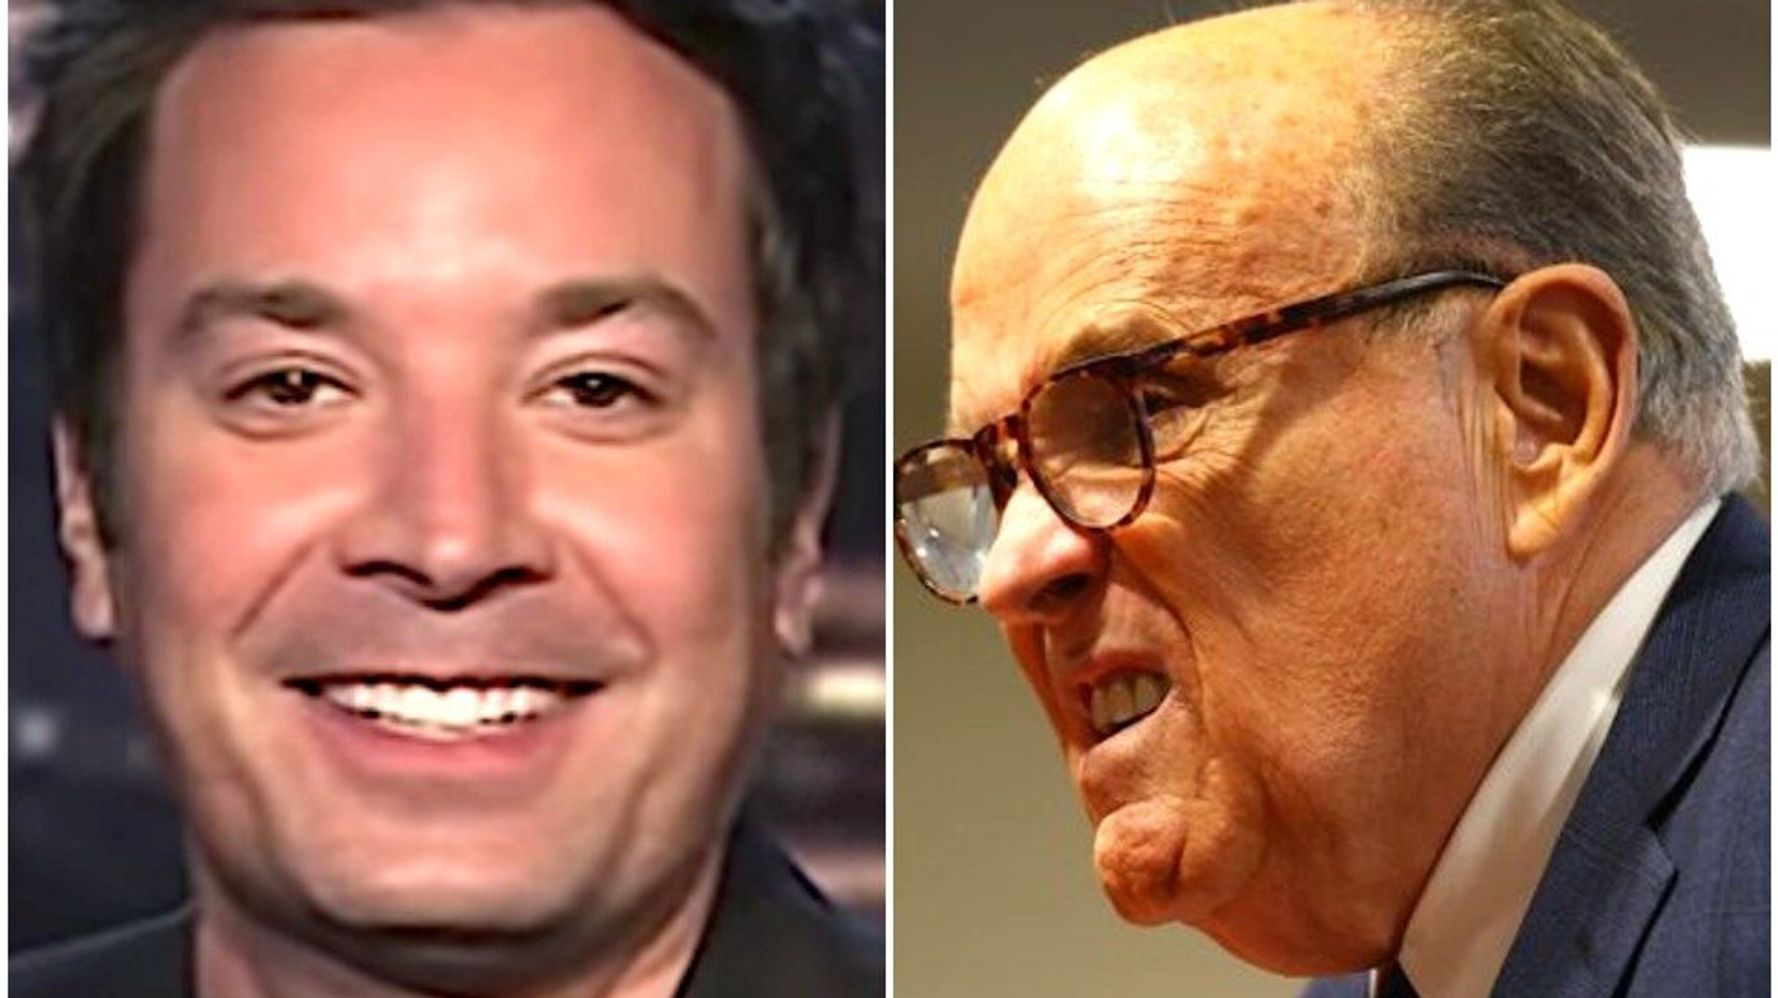 Jimmy Fallon Rips Savage Lines About Rudy Giuliani Farting During Hearing